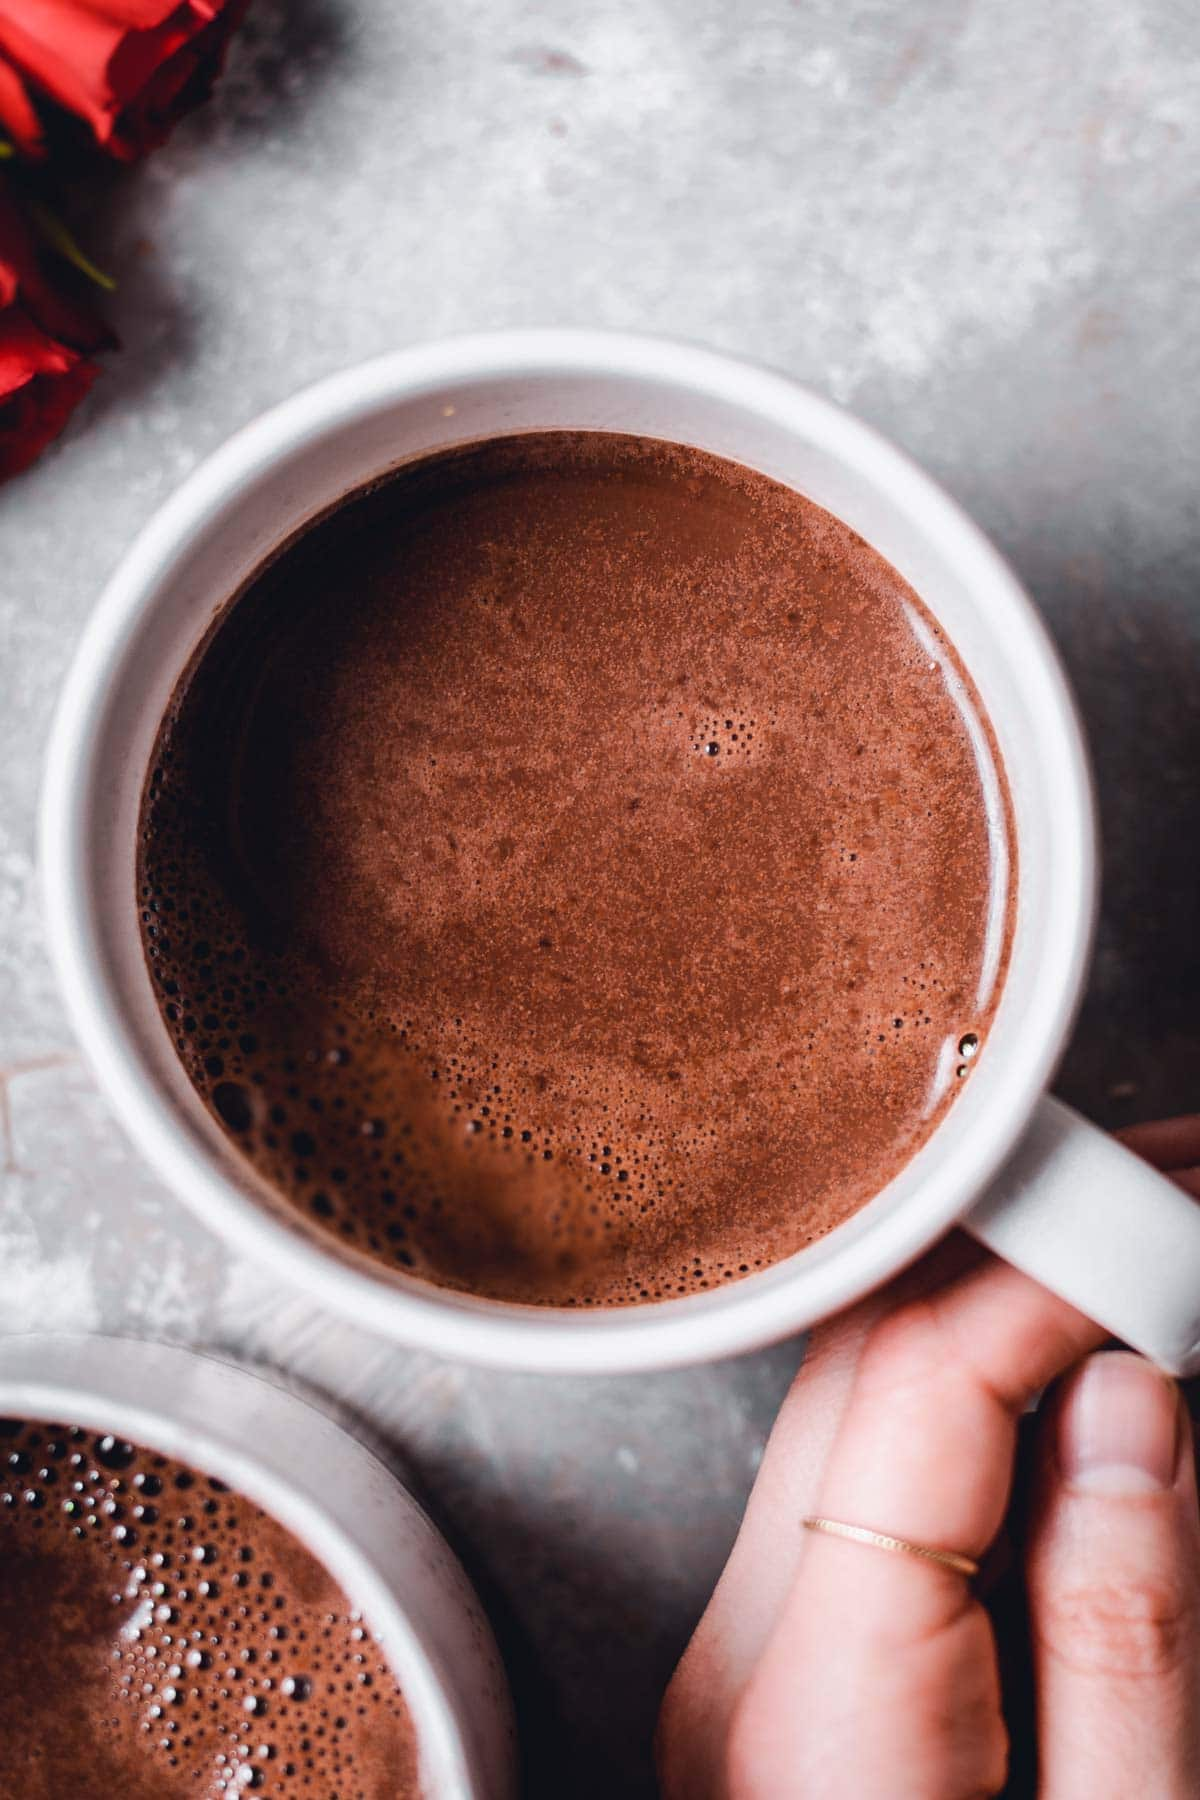 A close-up view of a mug of freshly made hot chocolate with bubbles on top and a hand holding the handle.